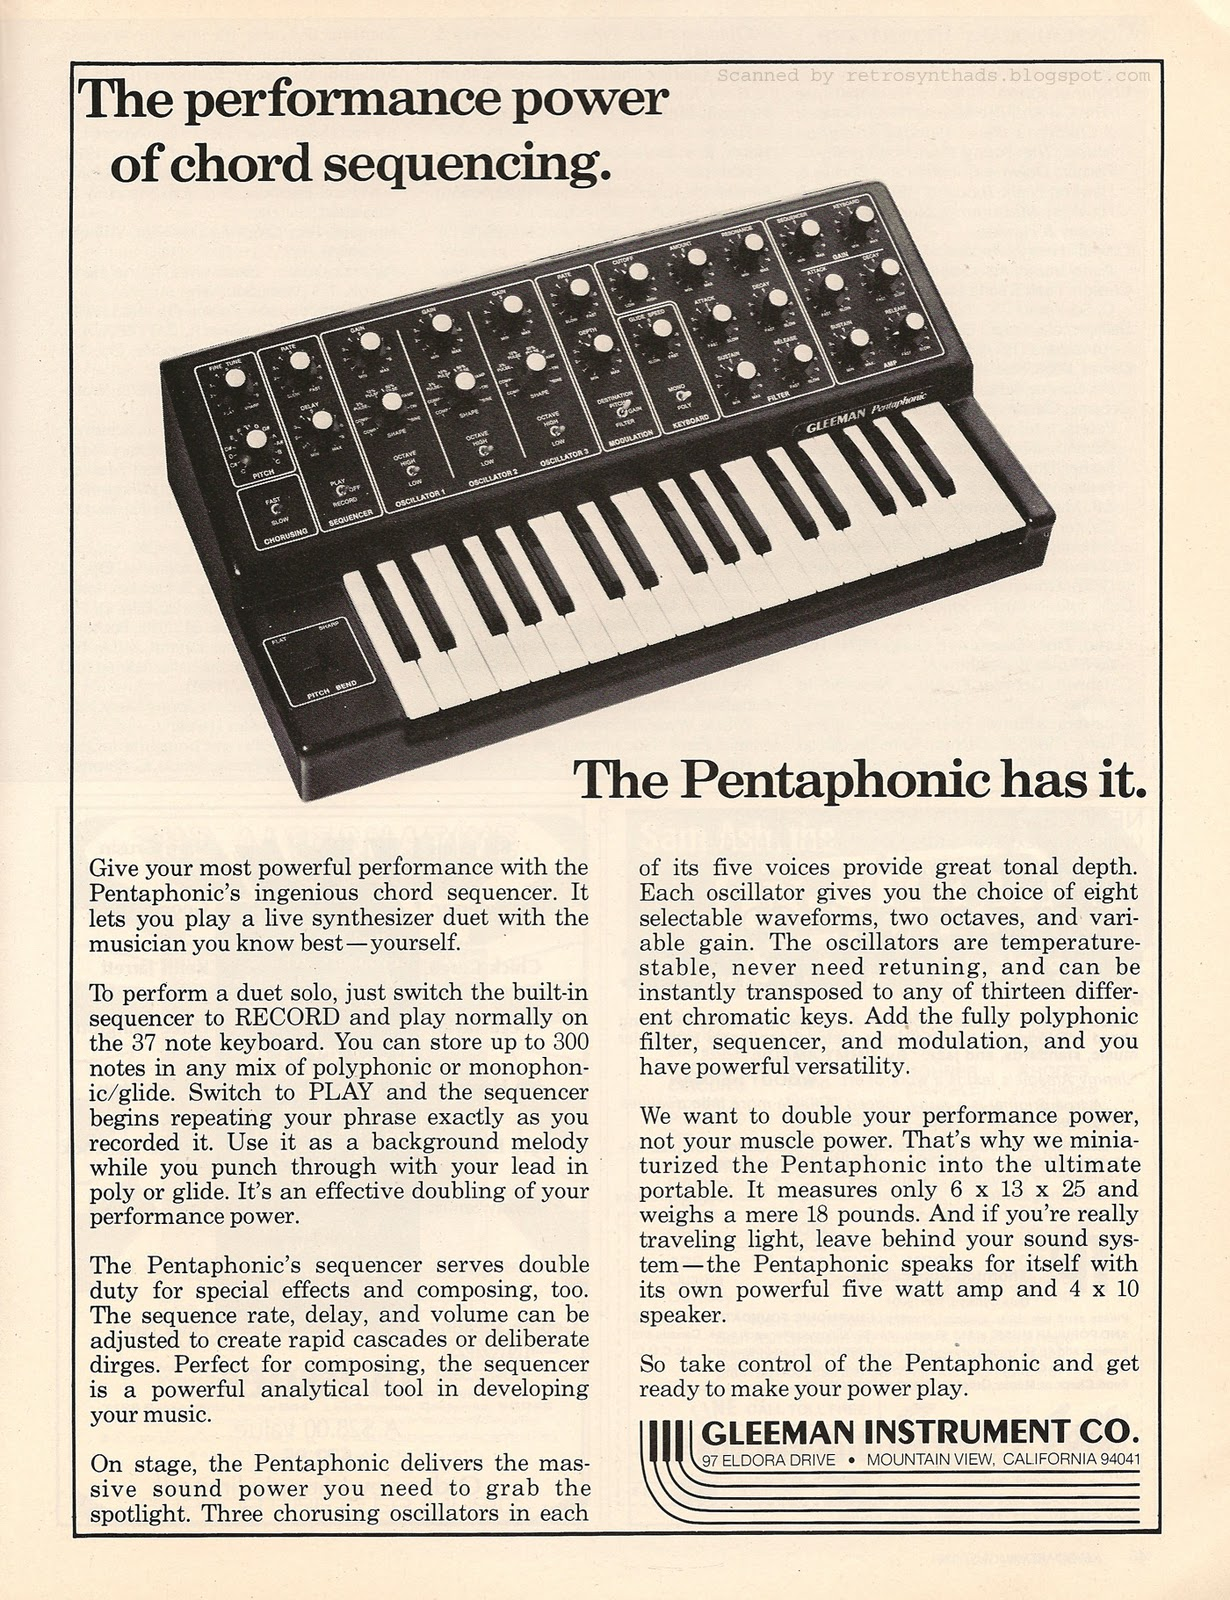 Retro Synth Ads 2011 Andrewmartenscom Mmt8 Keypad Repair For Dummies Gleeman Pentaphonic The Performance Power Of Chord Sequencing Ad Keyboard 1981